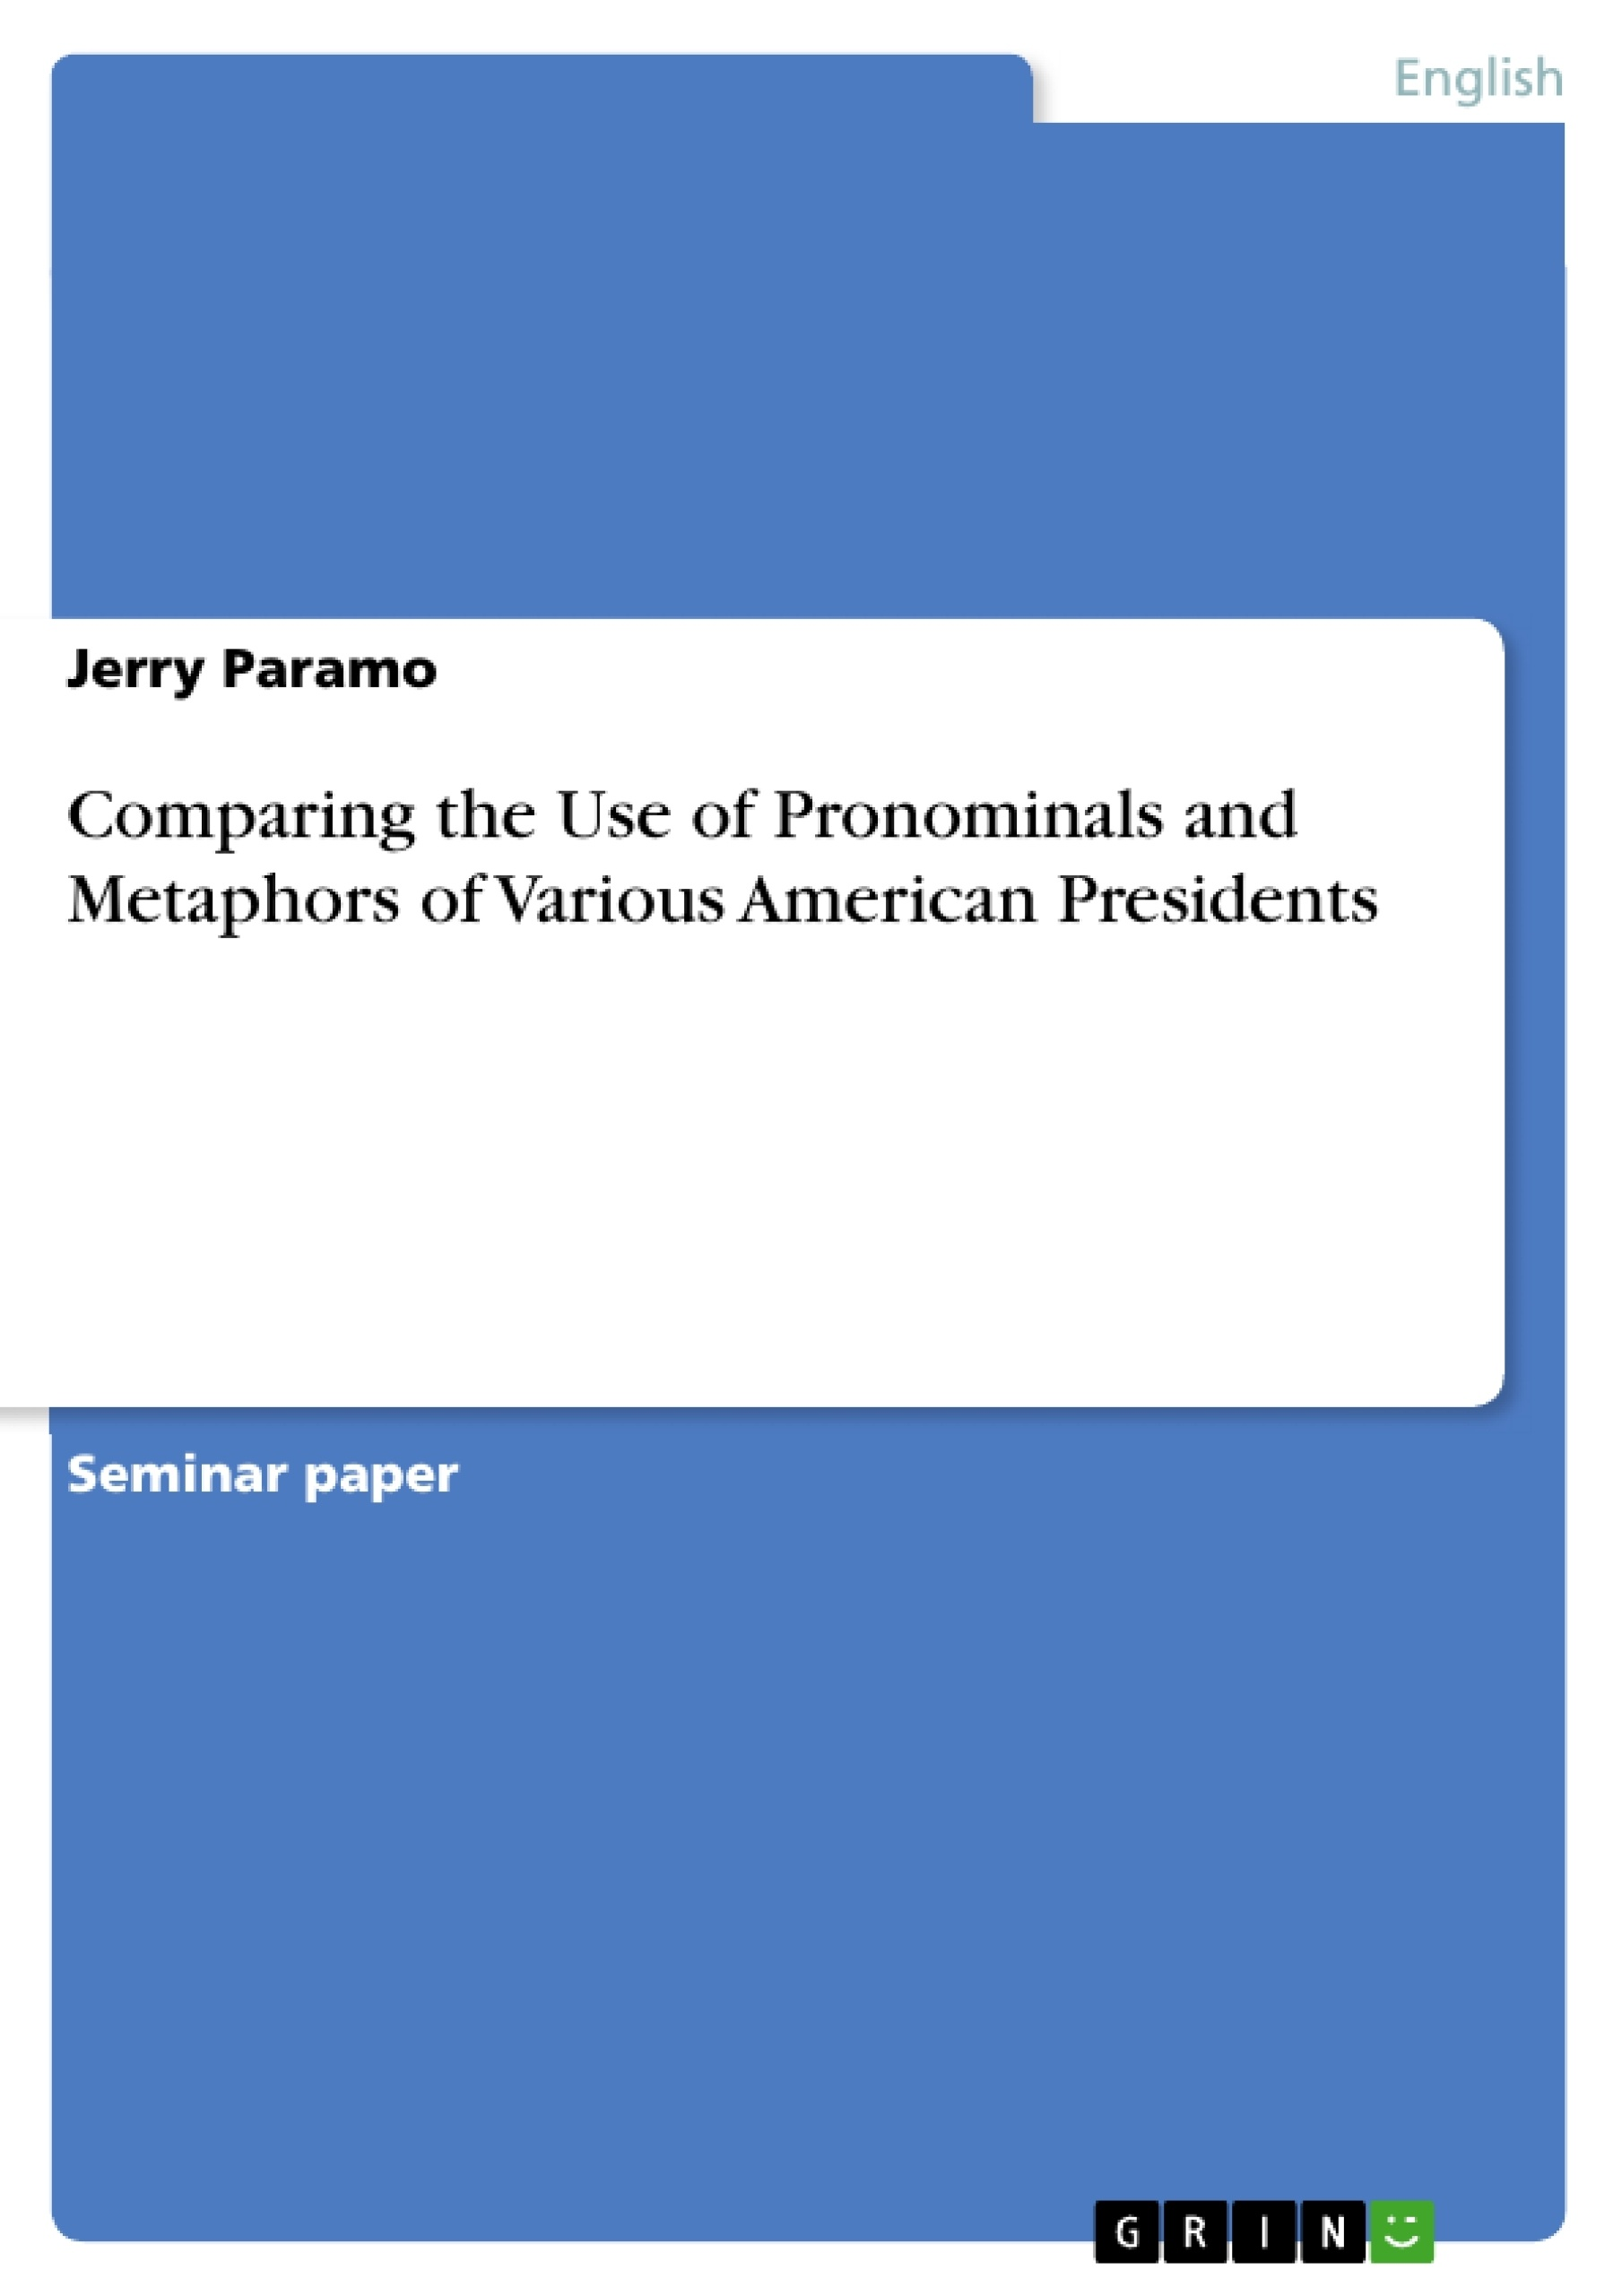 Title: Comparing the Use of Pronominals and Metaphors of Various American Presidents